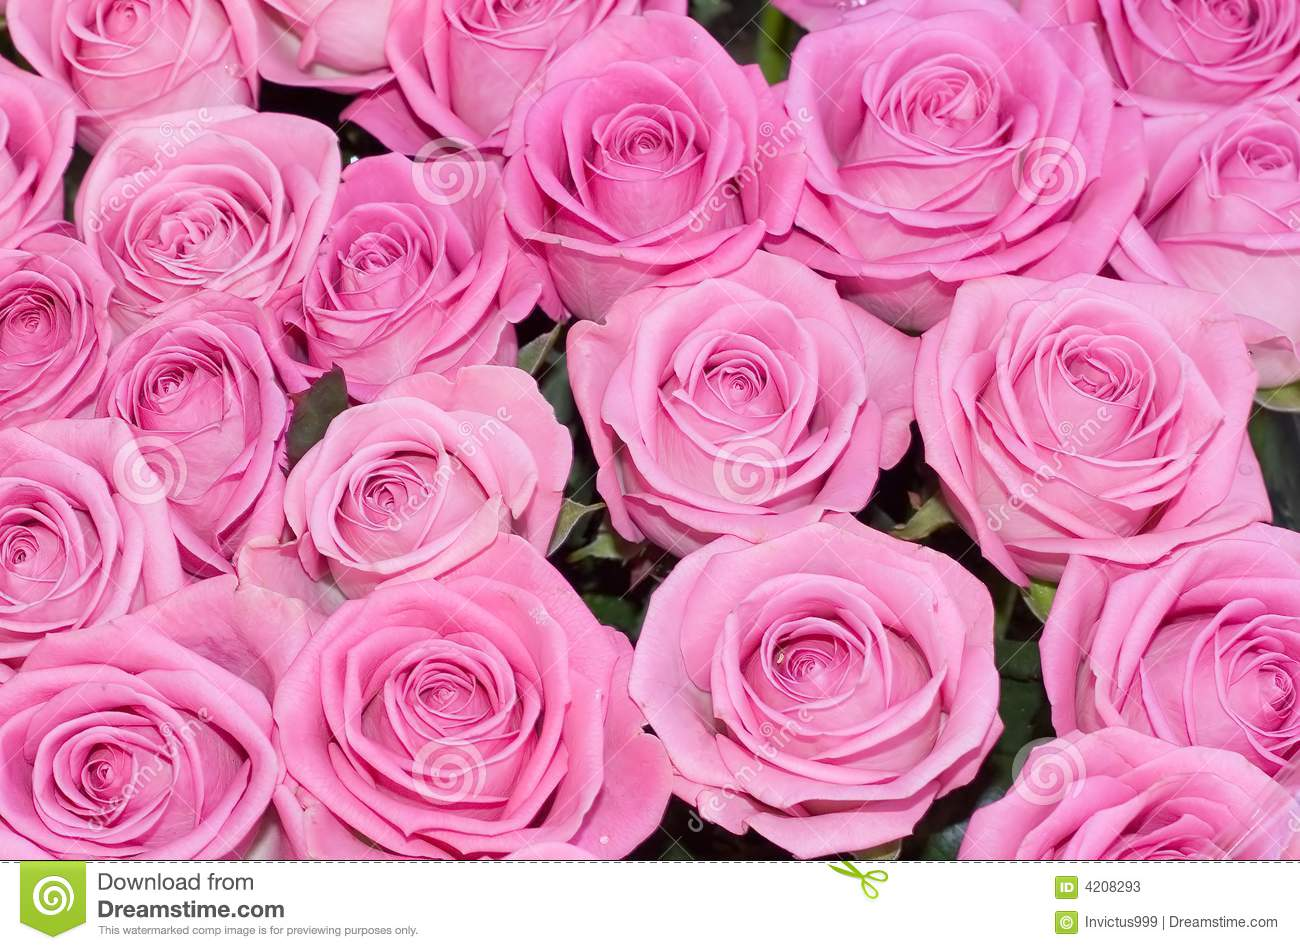 Iphone X Stock Wallpaper Live Pink Roses Background Of My Floral Backgrounds Stock